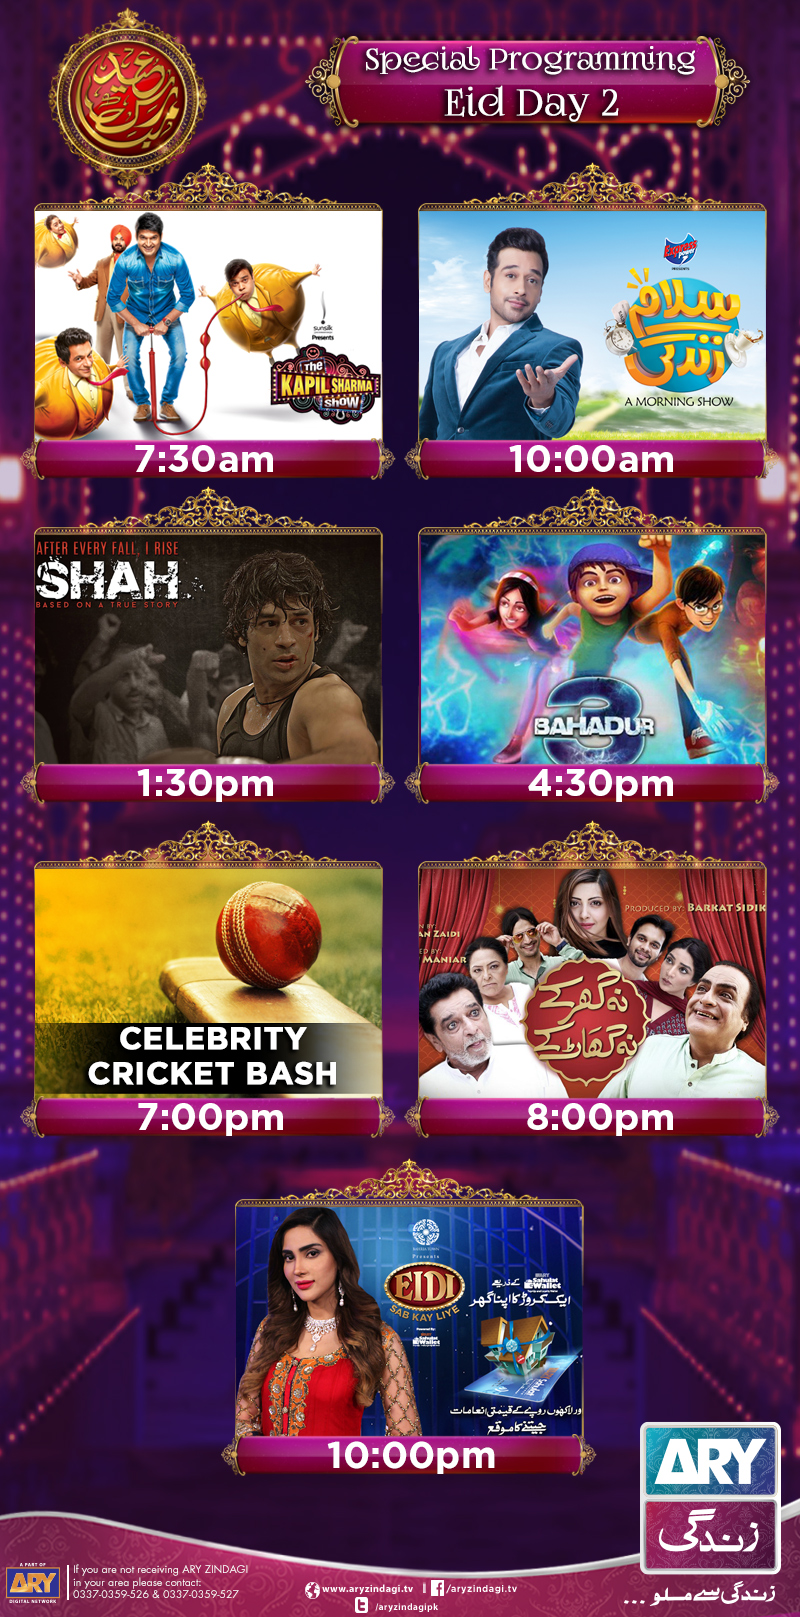 [Press Release] ARY Digital and ARY Zindagi brings exciting programs for Eid 2016 (8)